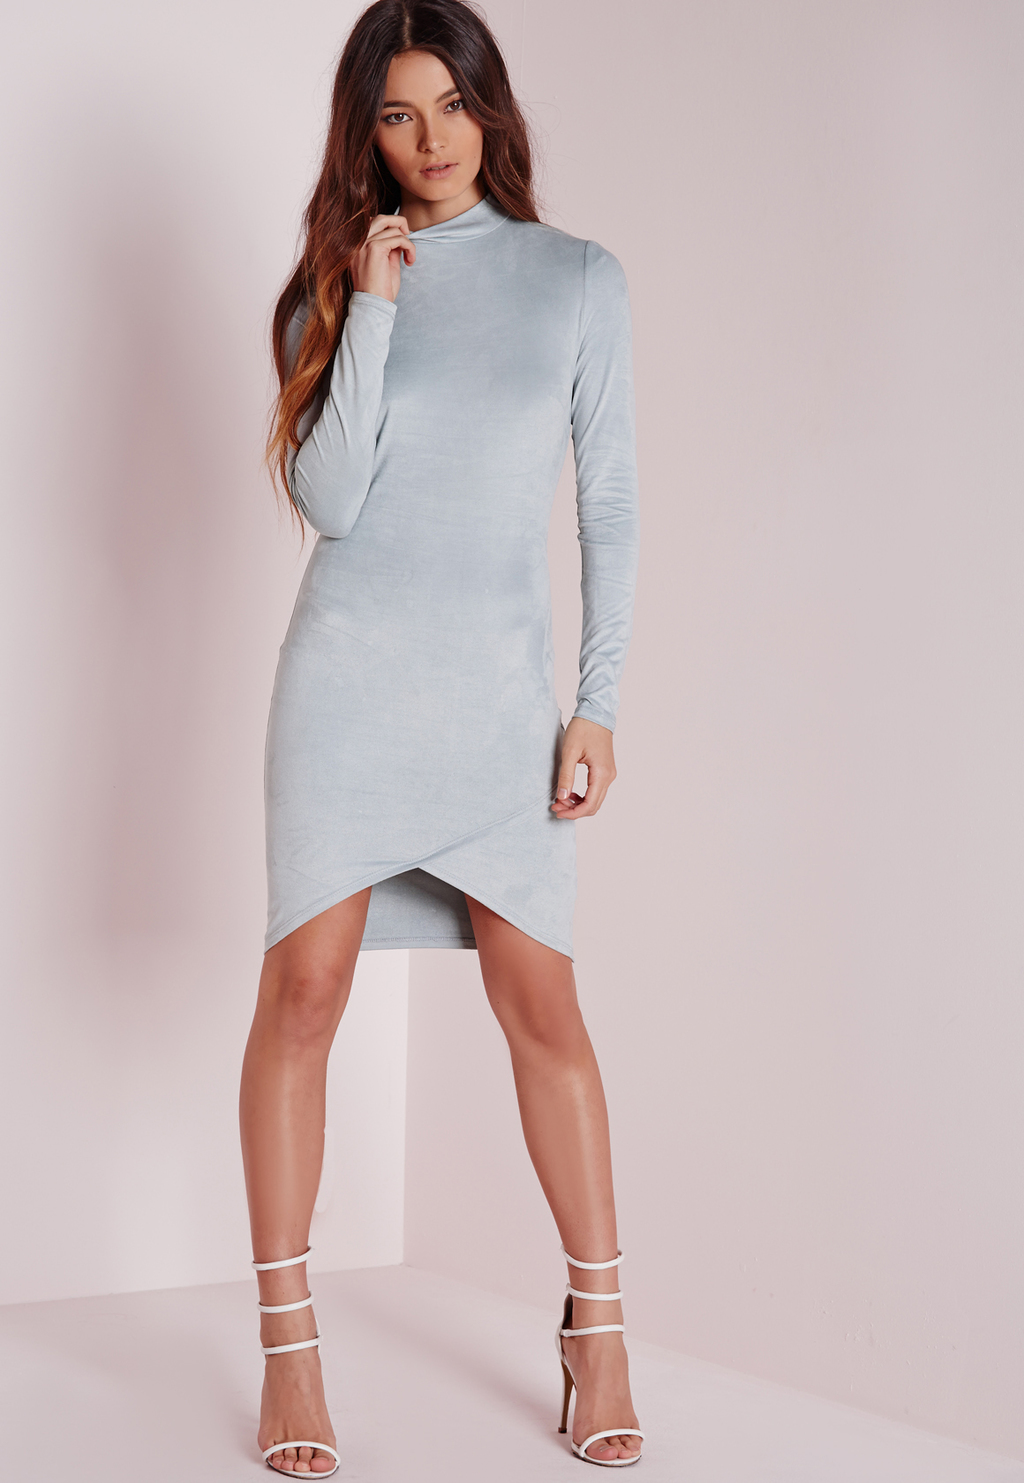 Long Sleeve Suede Bodycon Dress Powder Blue, Blue - length: mid thigh; fit: tight; pattern: plain; neckline: high neck; style: bodycon; hip detail: fitted at hip; predominant colour: pale blue; occasions: evening; fibres: polyester/polyamide - stretch; sleeve length: long sleeve; sleeve style: standard; pattern type: fabric; texture group: suede; season: s/s 2016; wardrobe: event